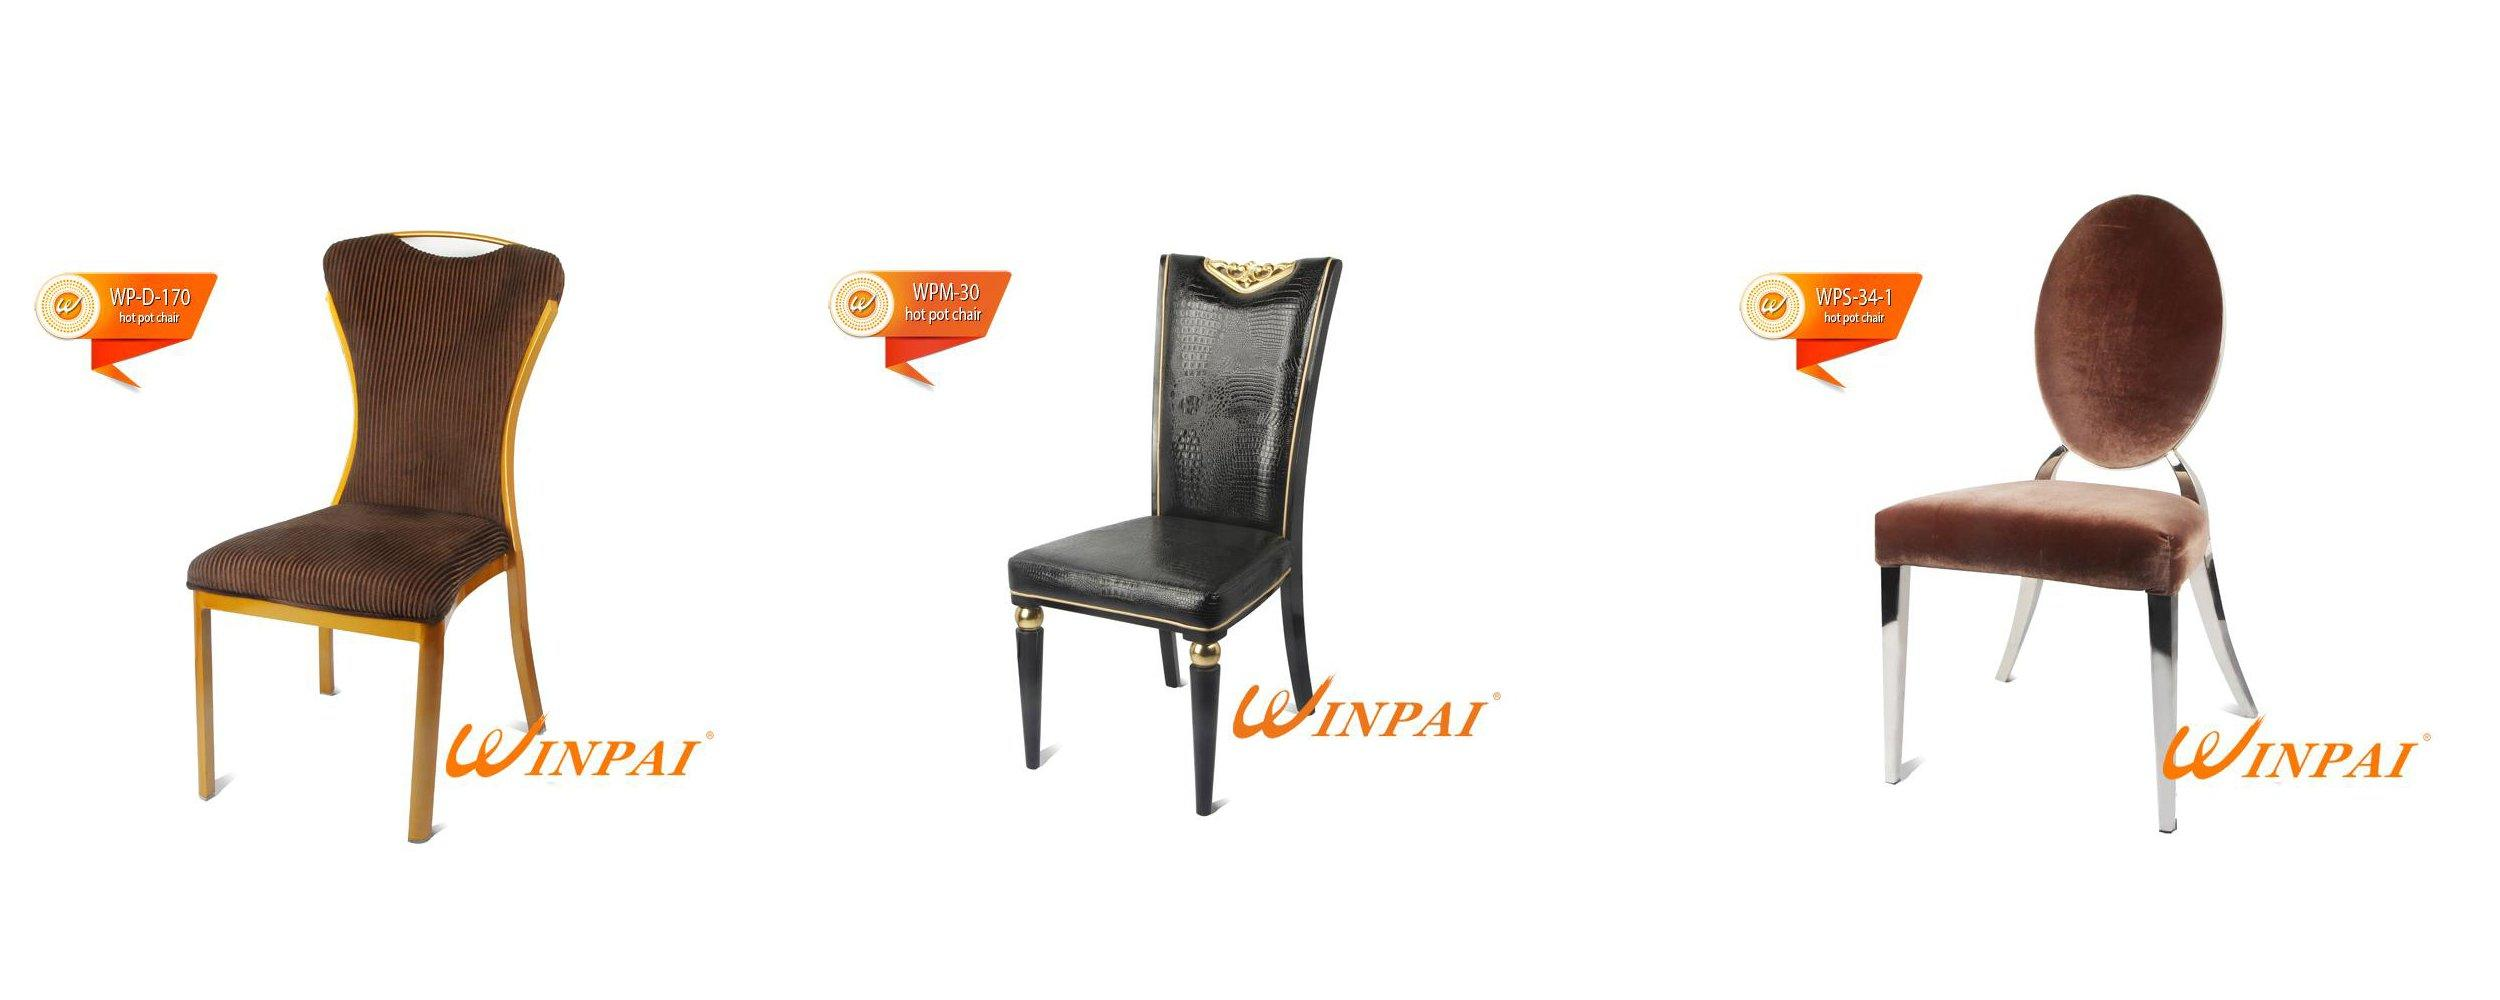 professional metal restaurant chairs series for dinning room-2